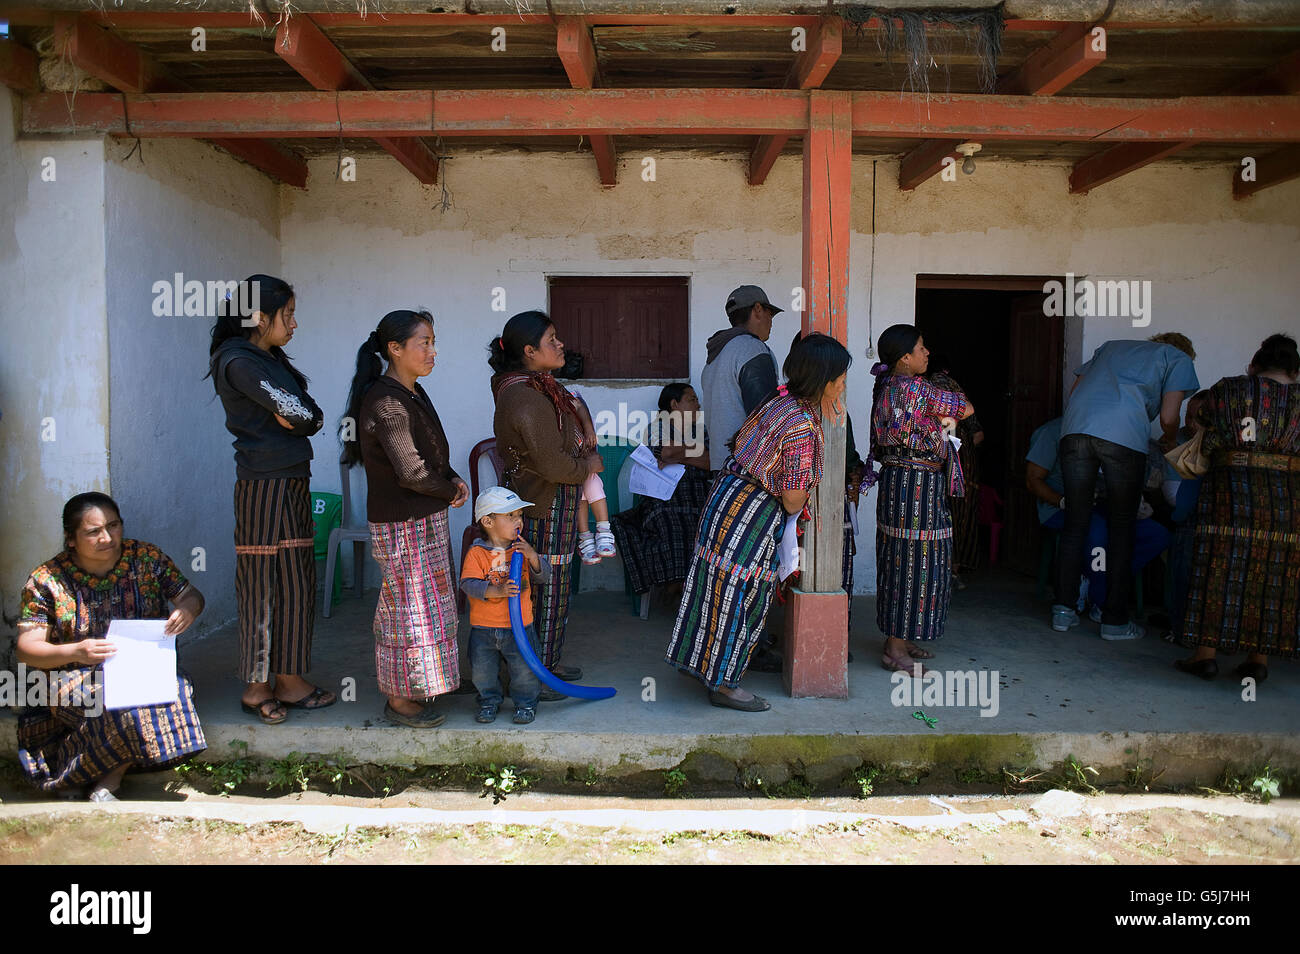 Maya indigenous people waits in line at medical clinic provided by local NPO in El Barranco in Solila, Guatemala. - Stock Image